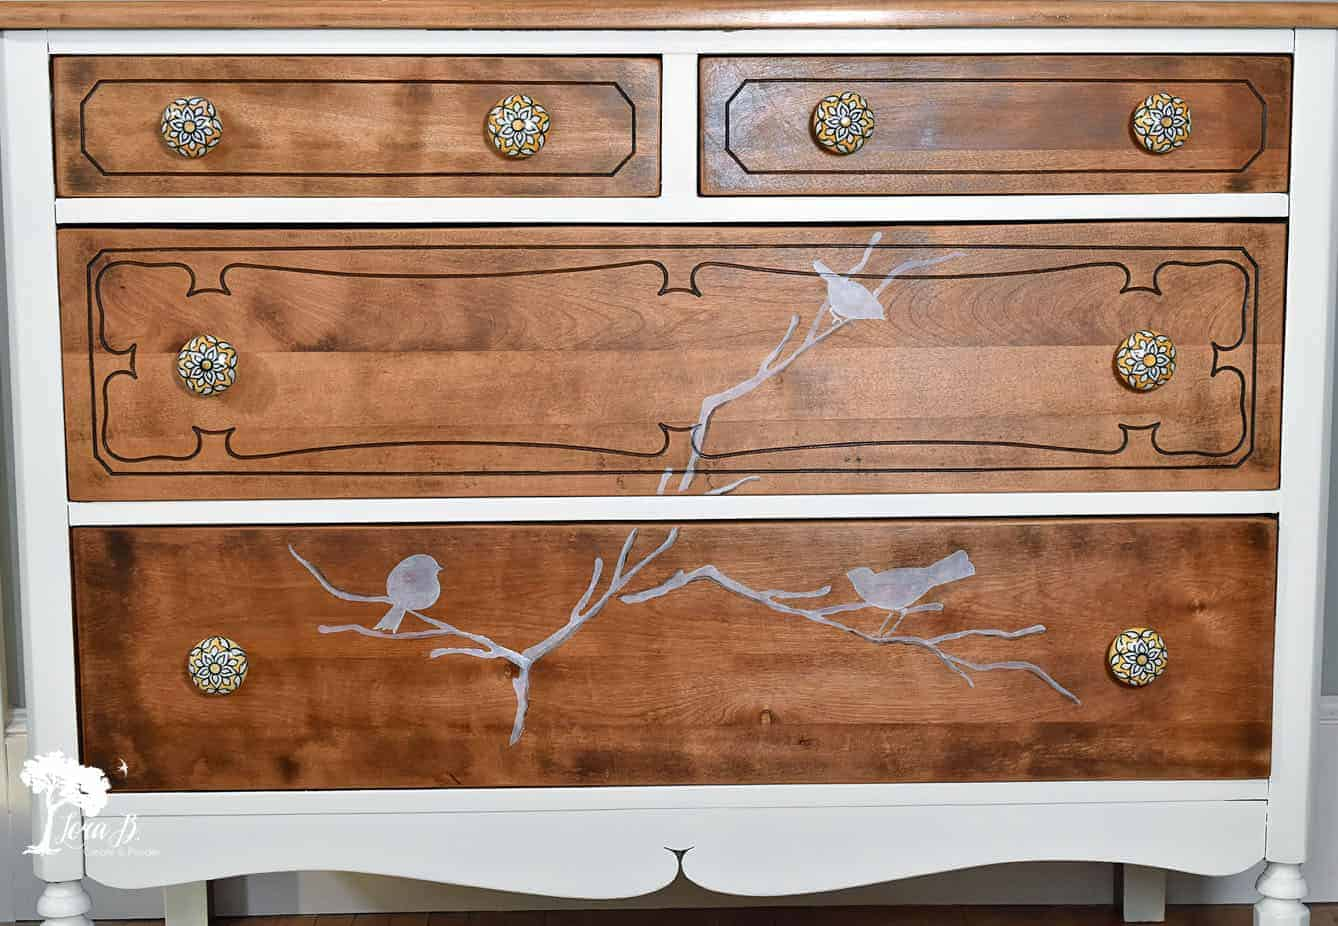 3 Questions to Ask Before You Paint (and/or stain) Your Furniture